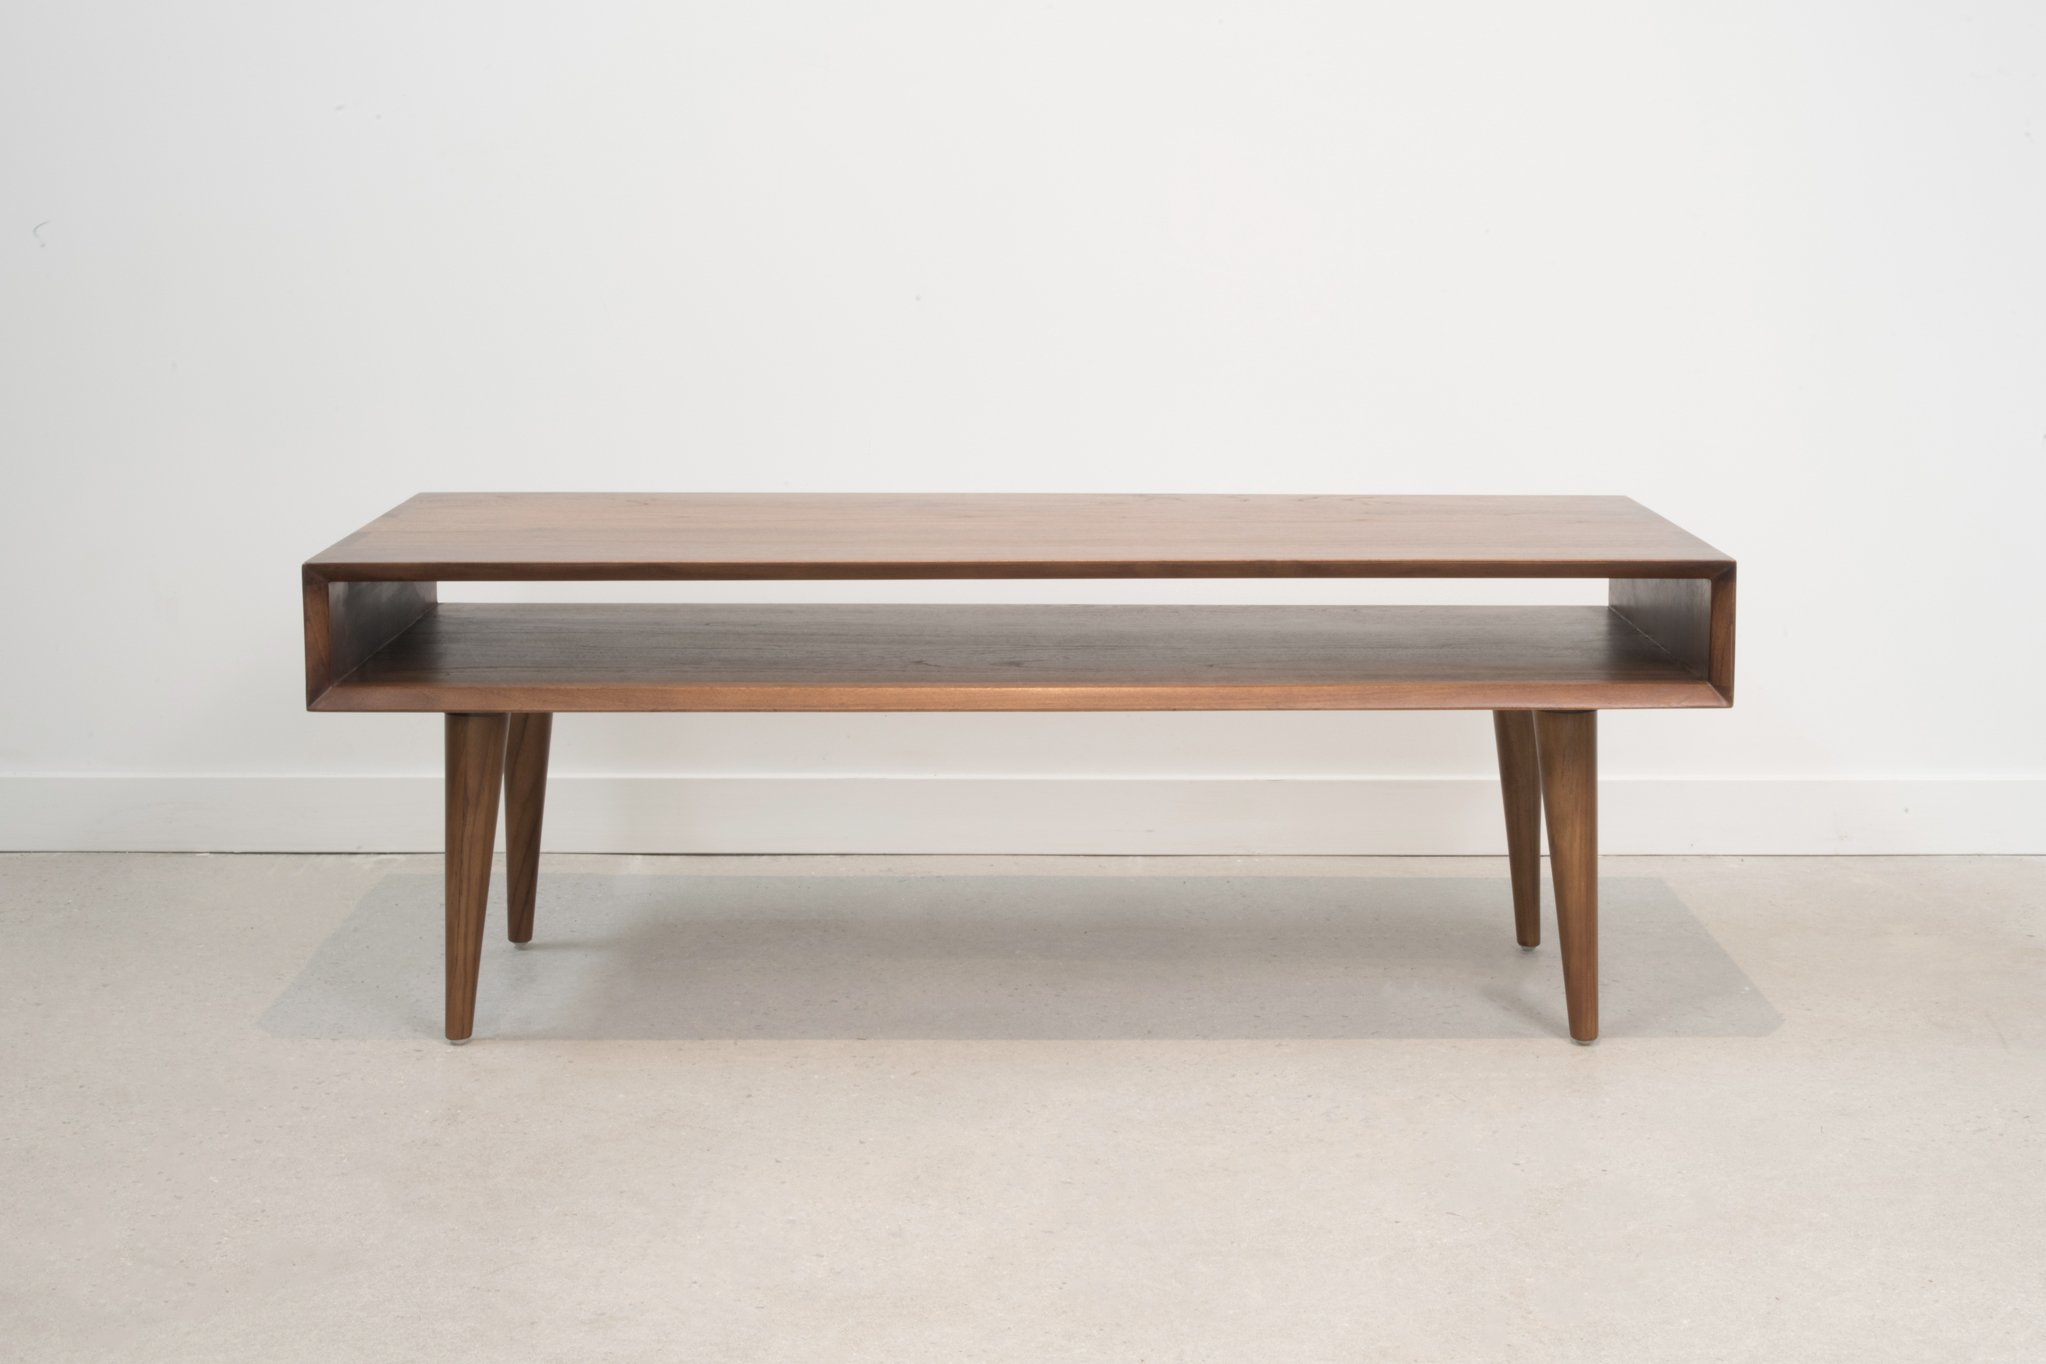 Ciao Reef Coffee Table Coffee Table Coffee Table With Storage Dovetail Joinery [ 1364 x 2046 Pixel ]